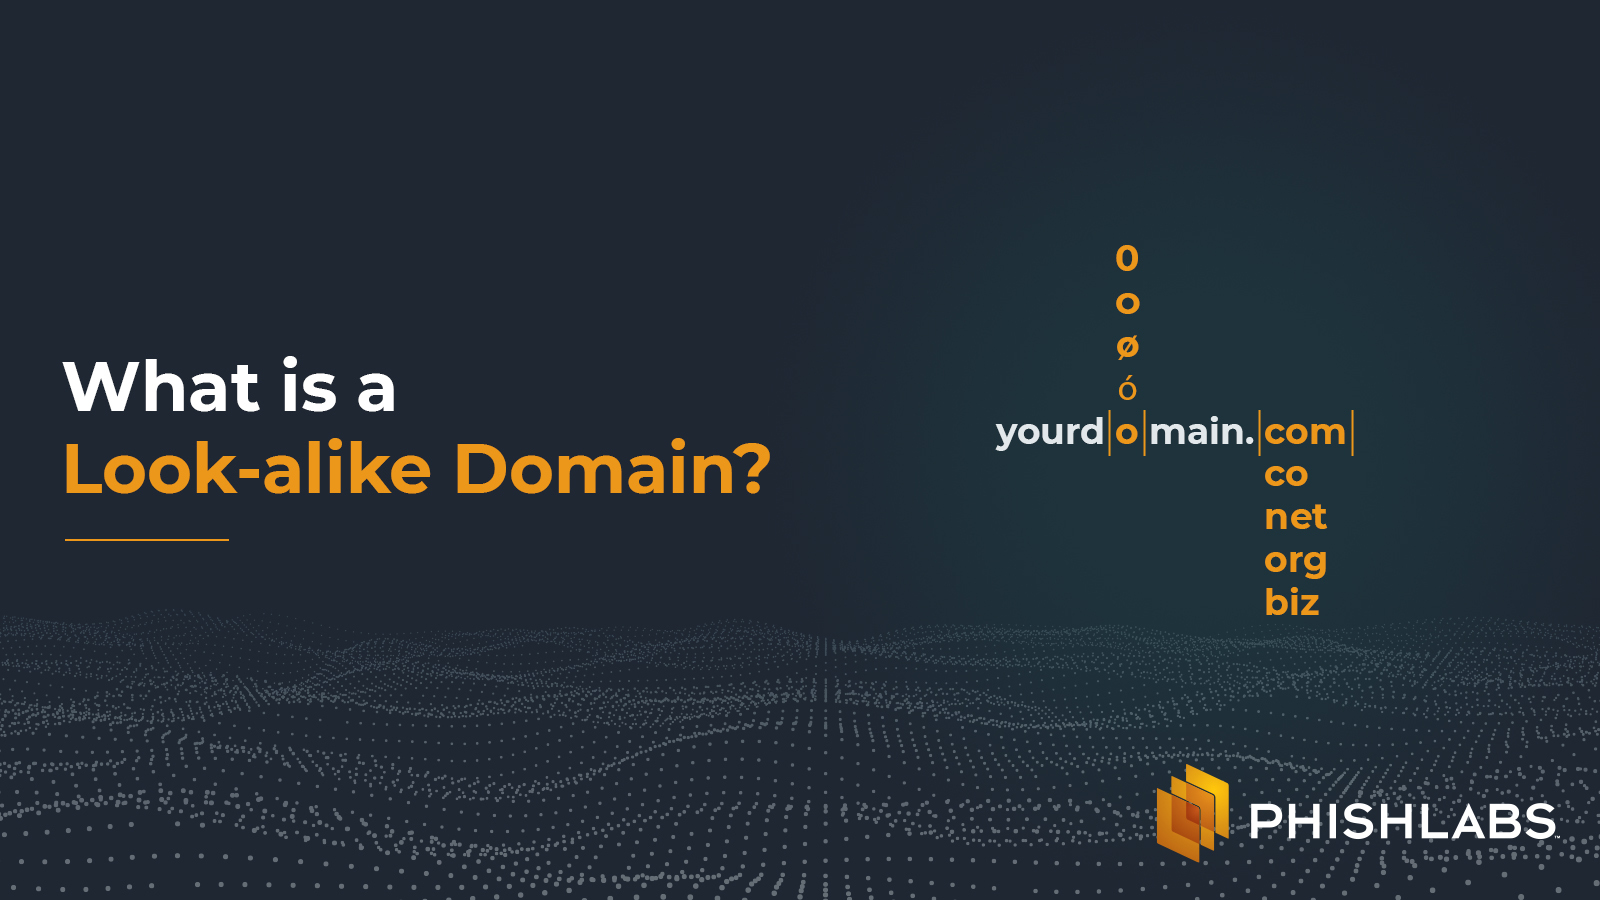 What is a look-alike domain?